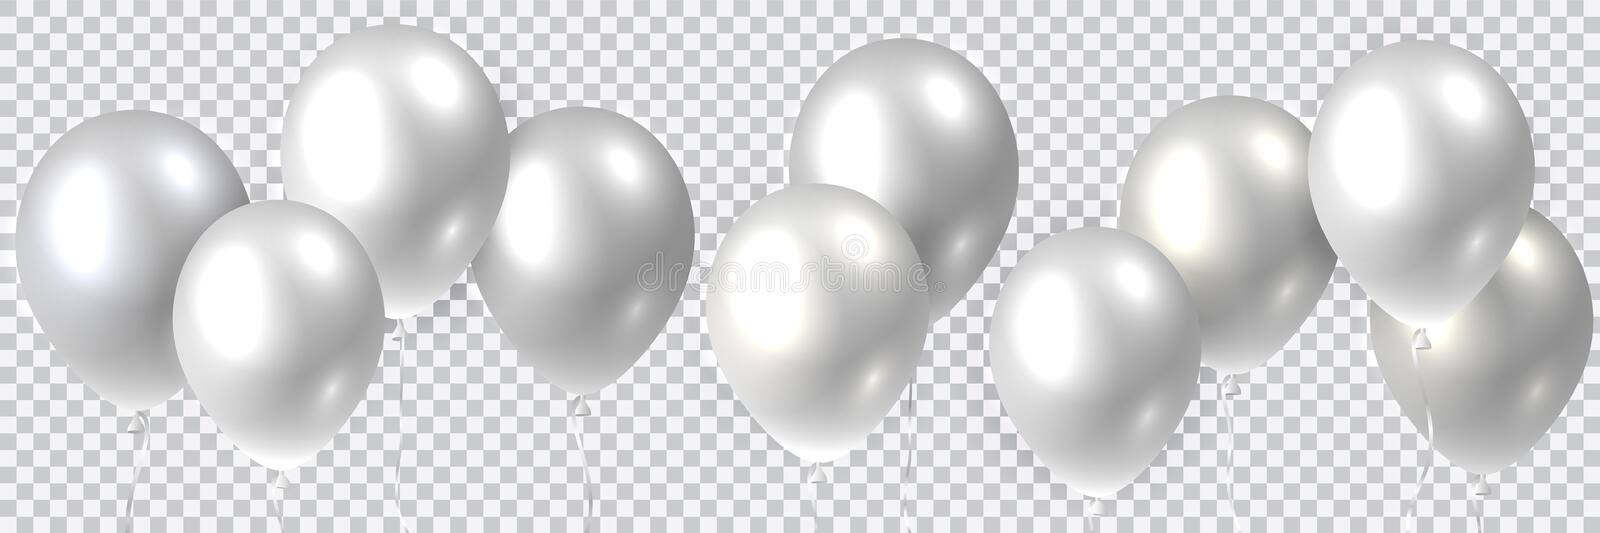 Beautiful colorful realistic seamless vector of silver flying party balloons stock illustration